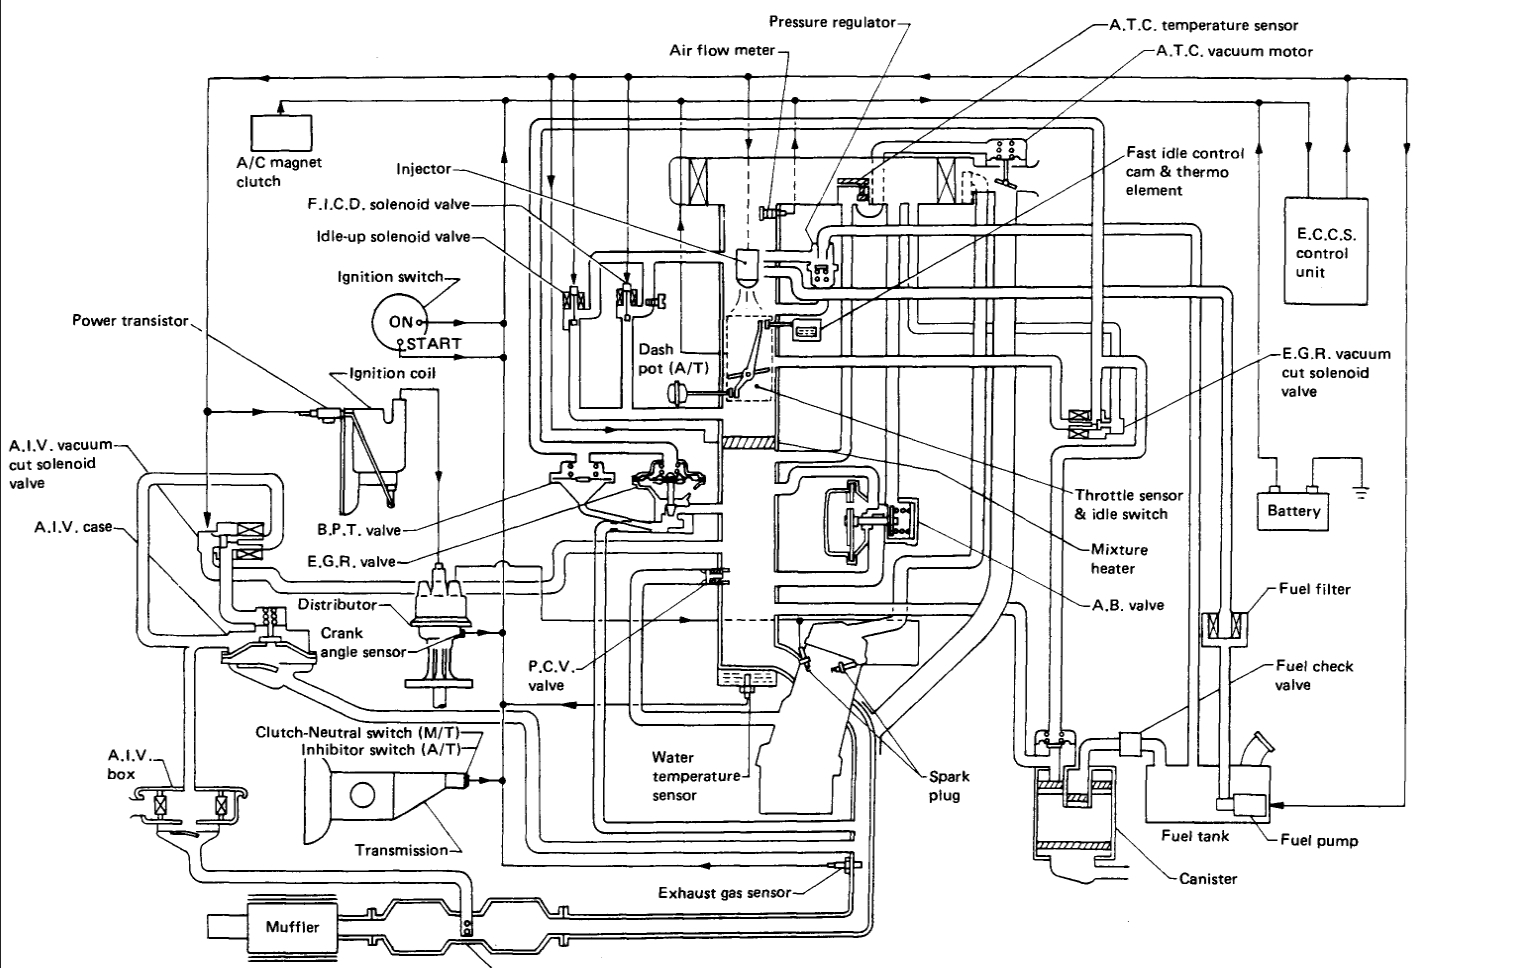 Vacuum Diagram For A Z24 Four Cylinder Two Wheel Drive Manual 180 Motor Engine Thumb